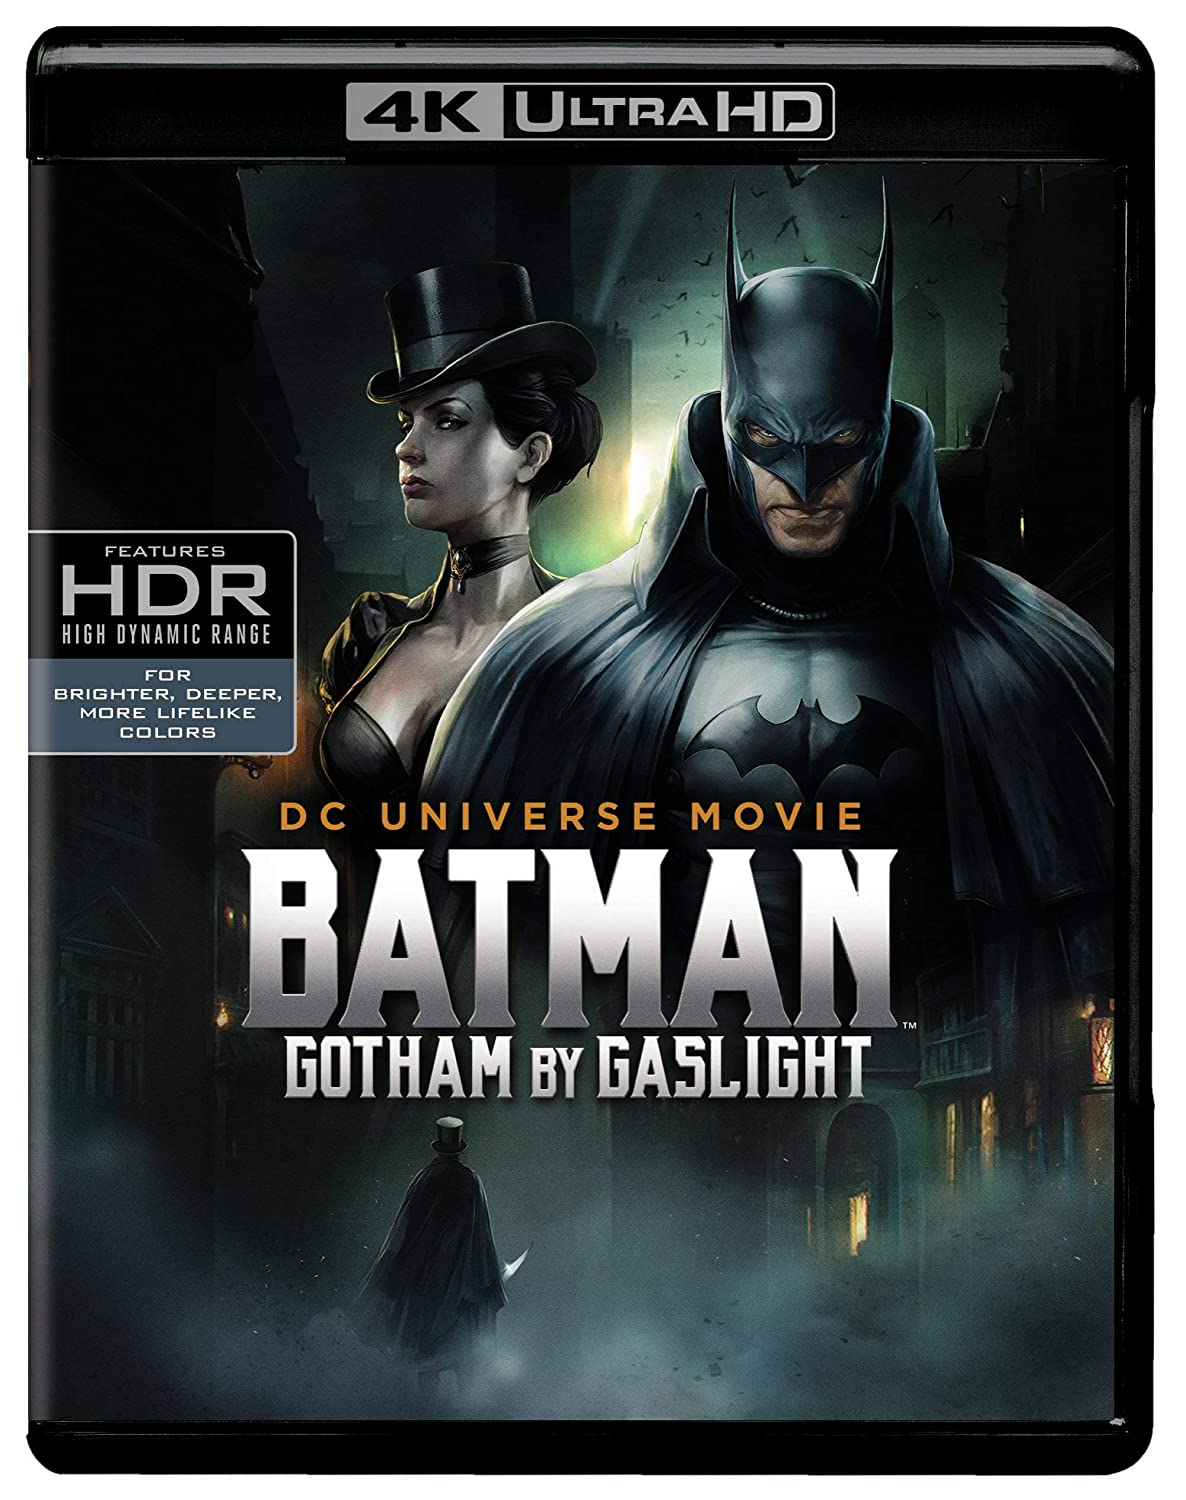 Dcu: Batman - Gotham by Gaslight [USA] [Blu-ray]: Amazon.es ...